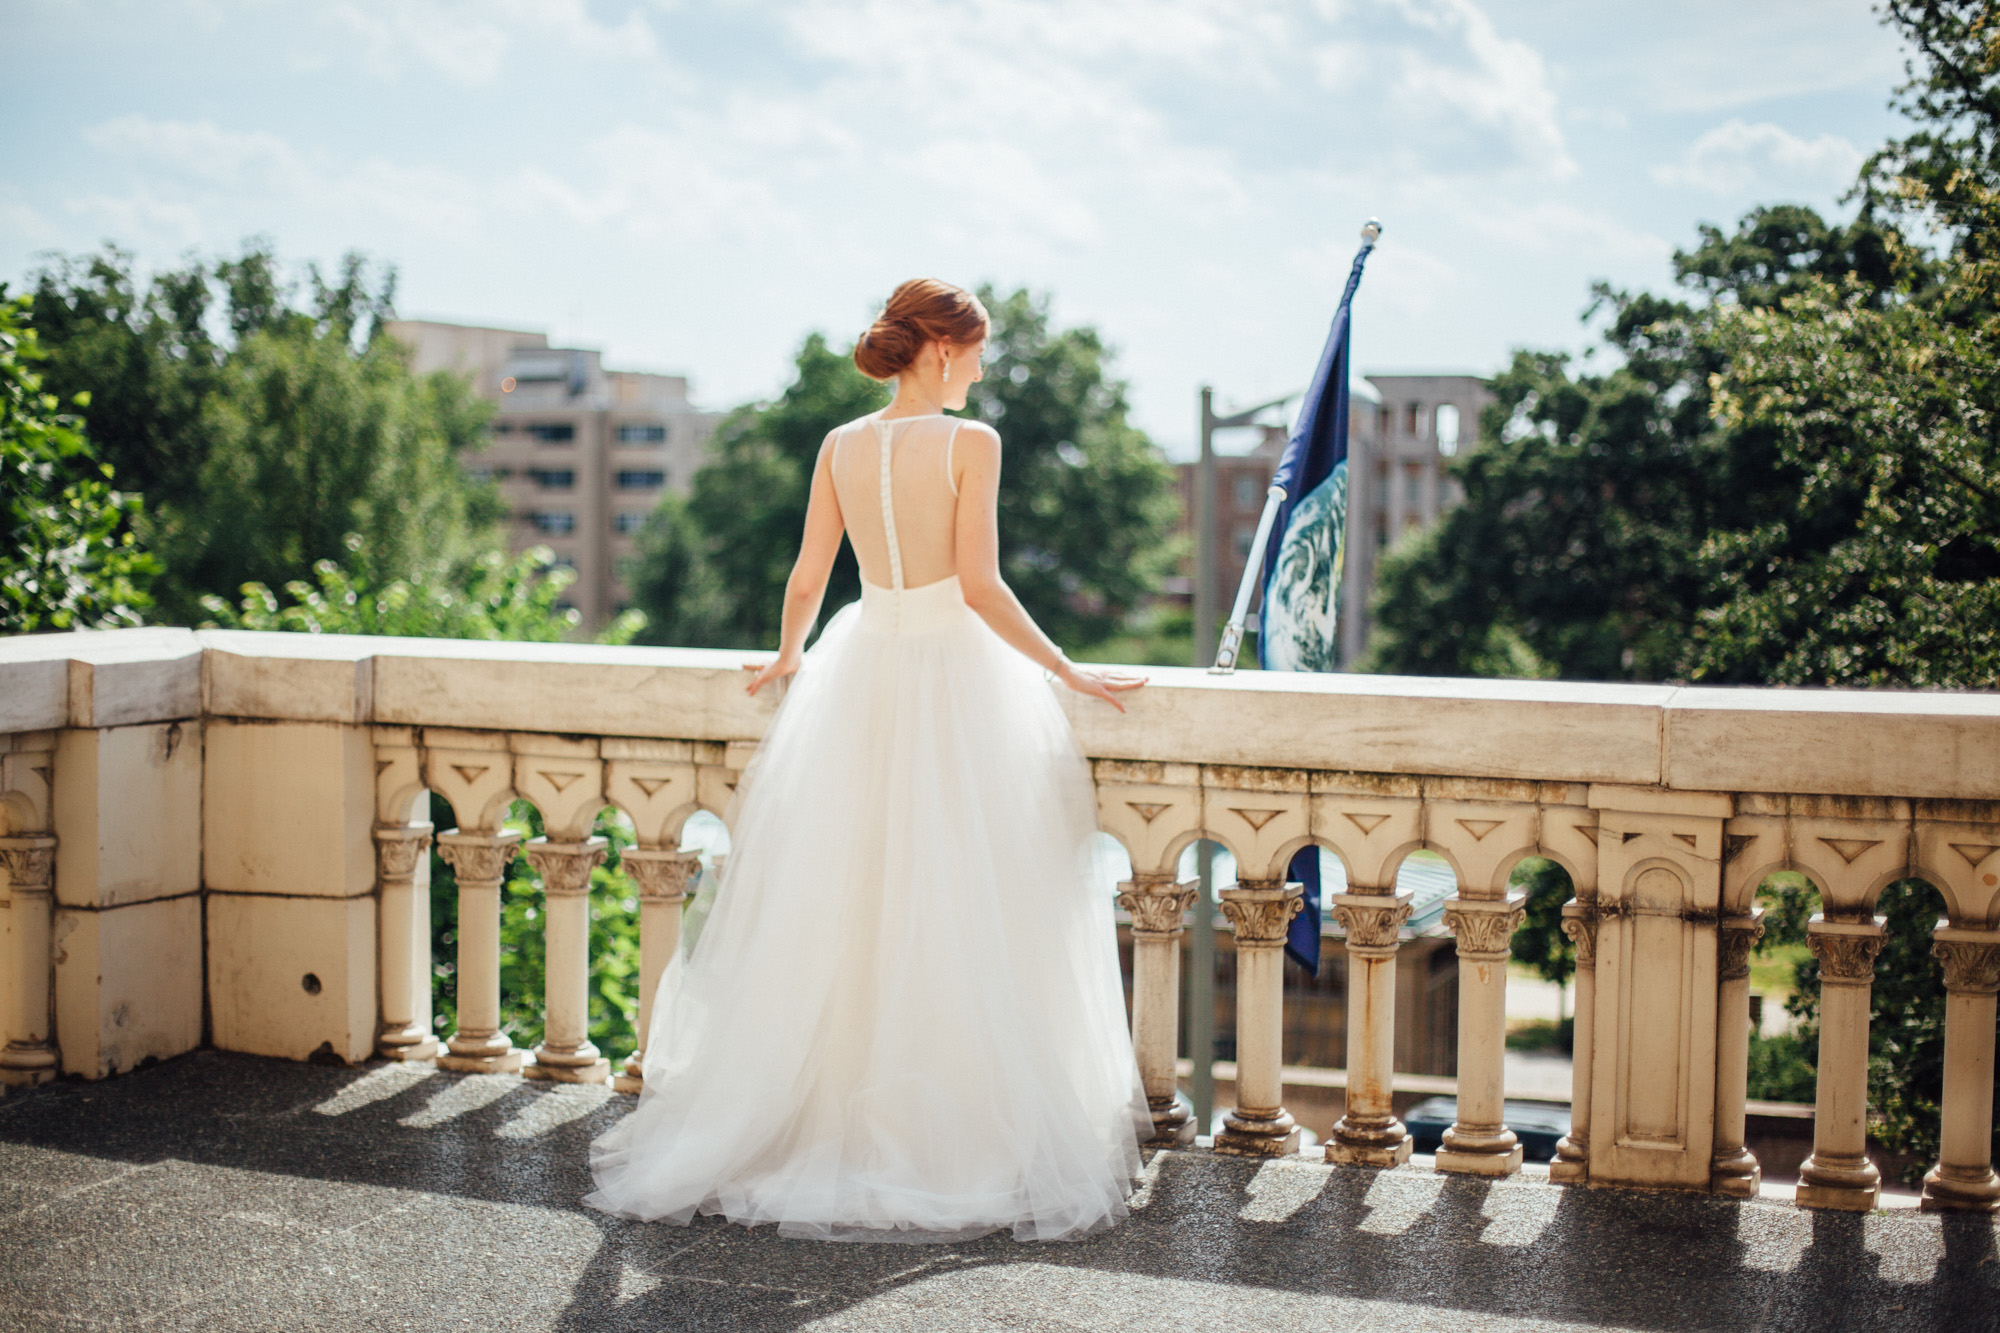 SarahMattozziPhotography-BlackTieWedding-WashingtonDC-10.jpg